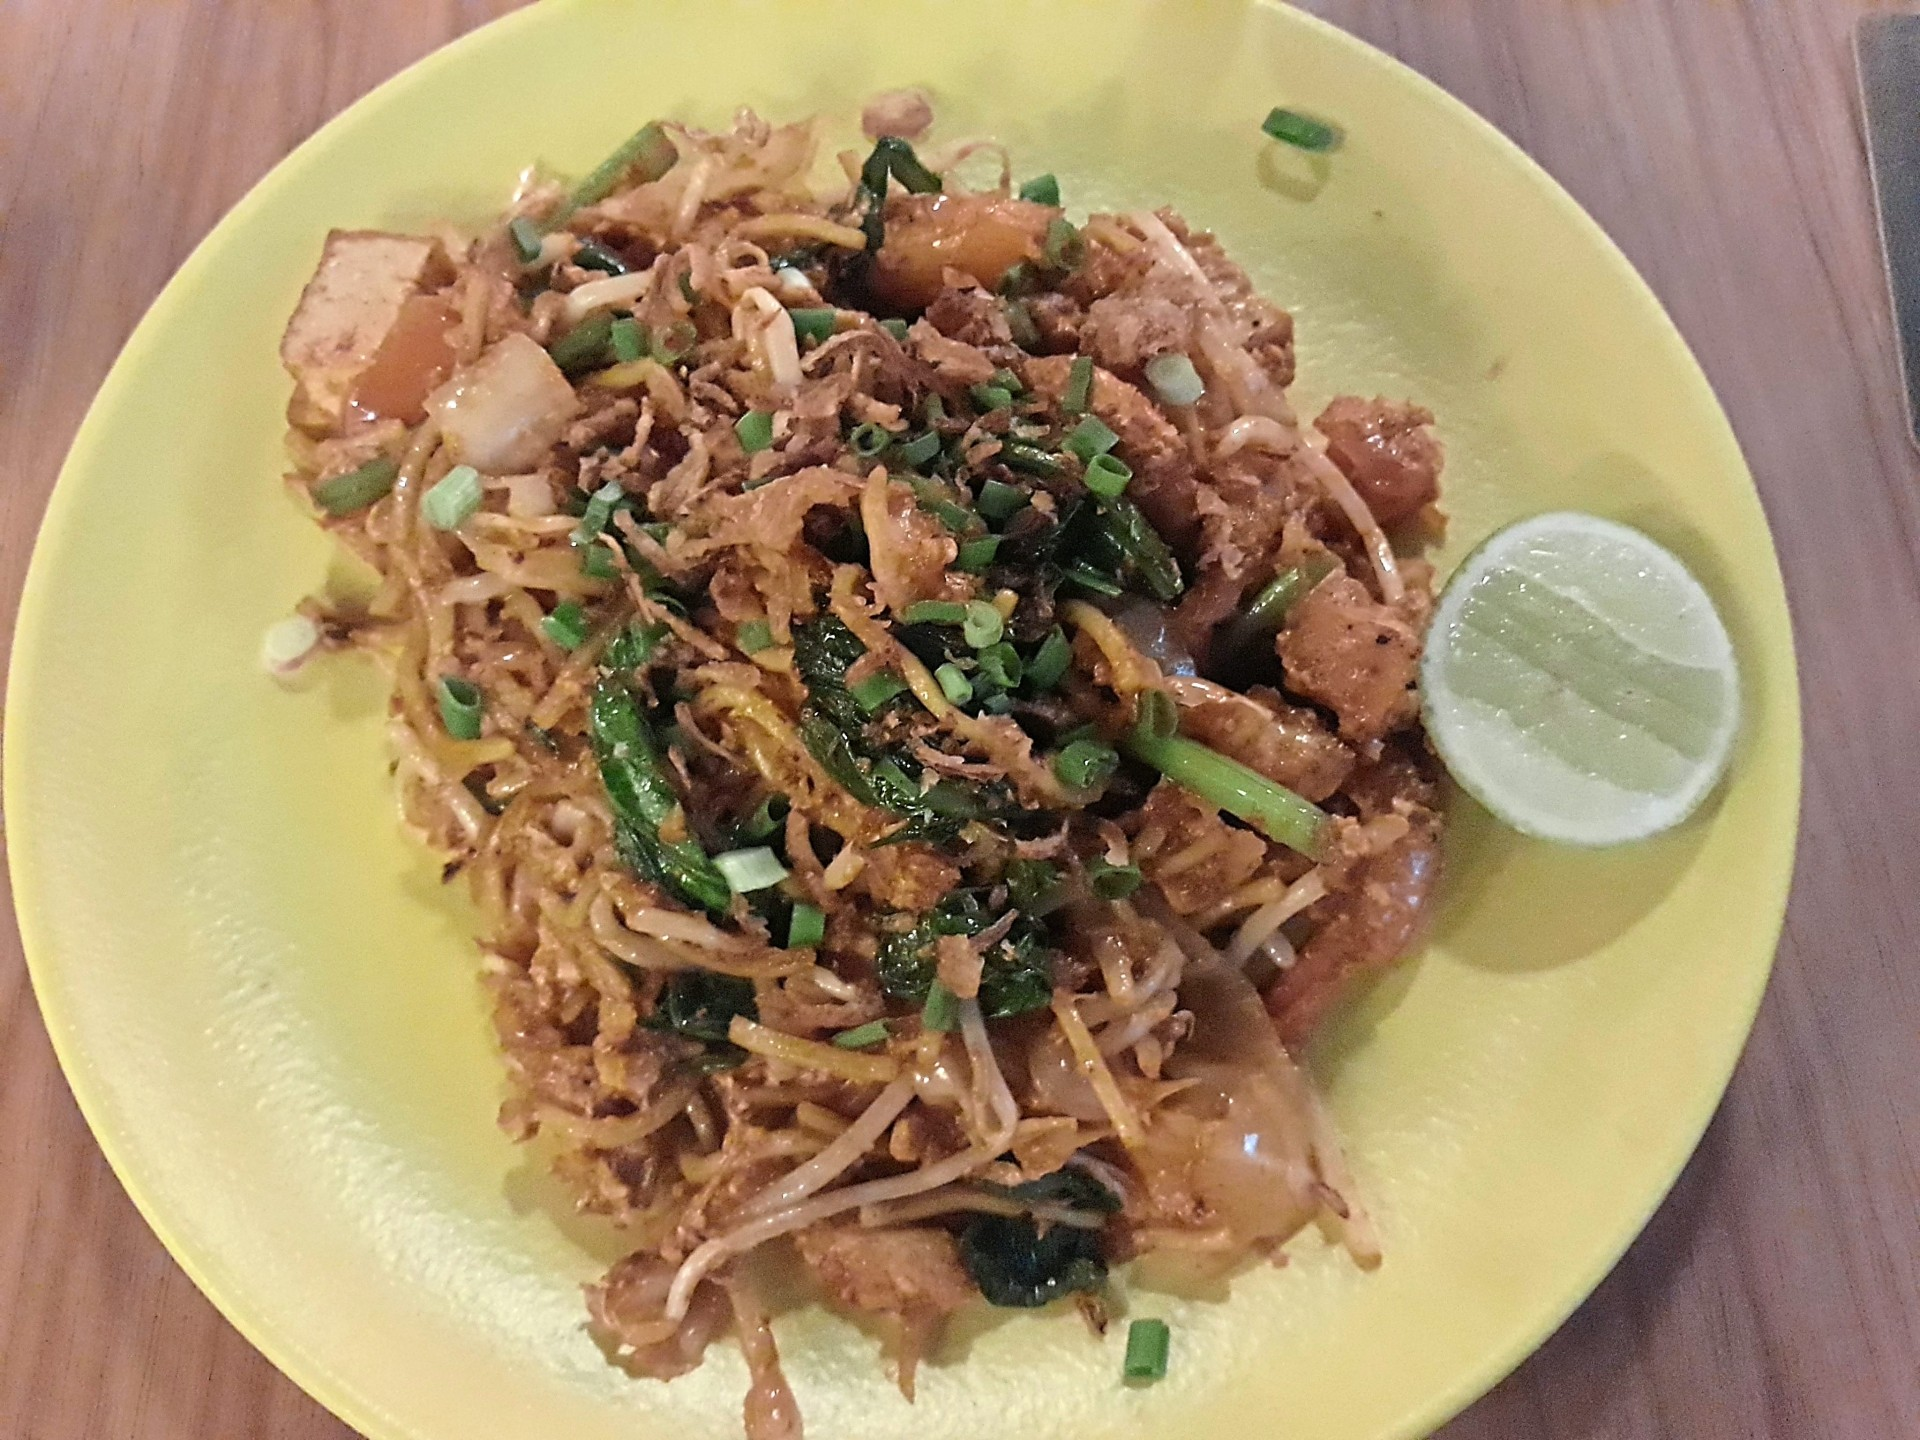 Sam's mee goreng mamak is priced at RM20.